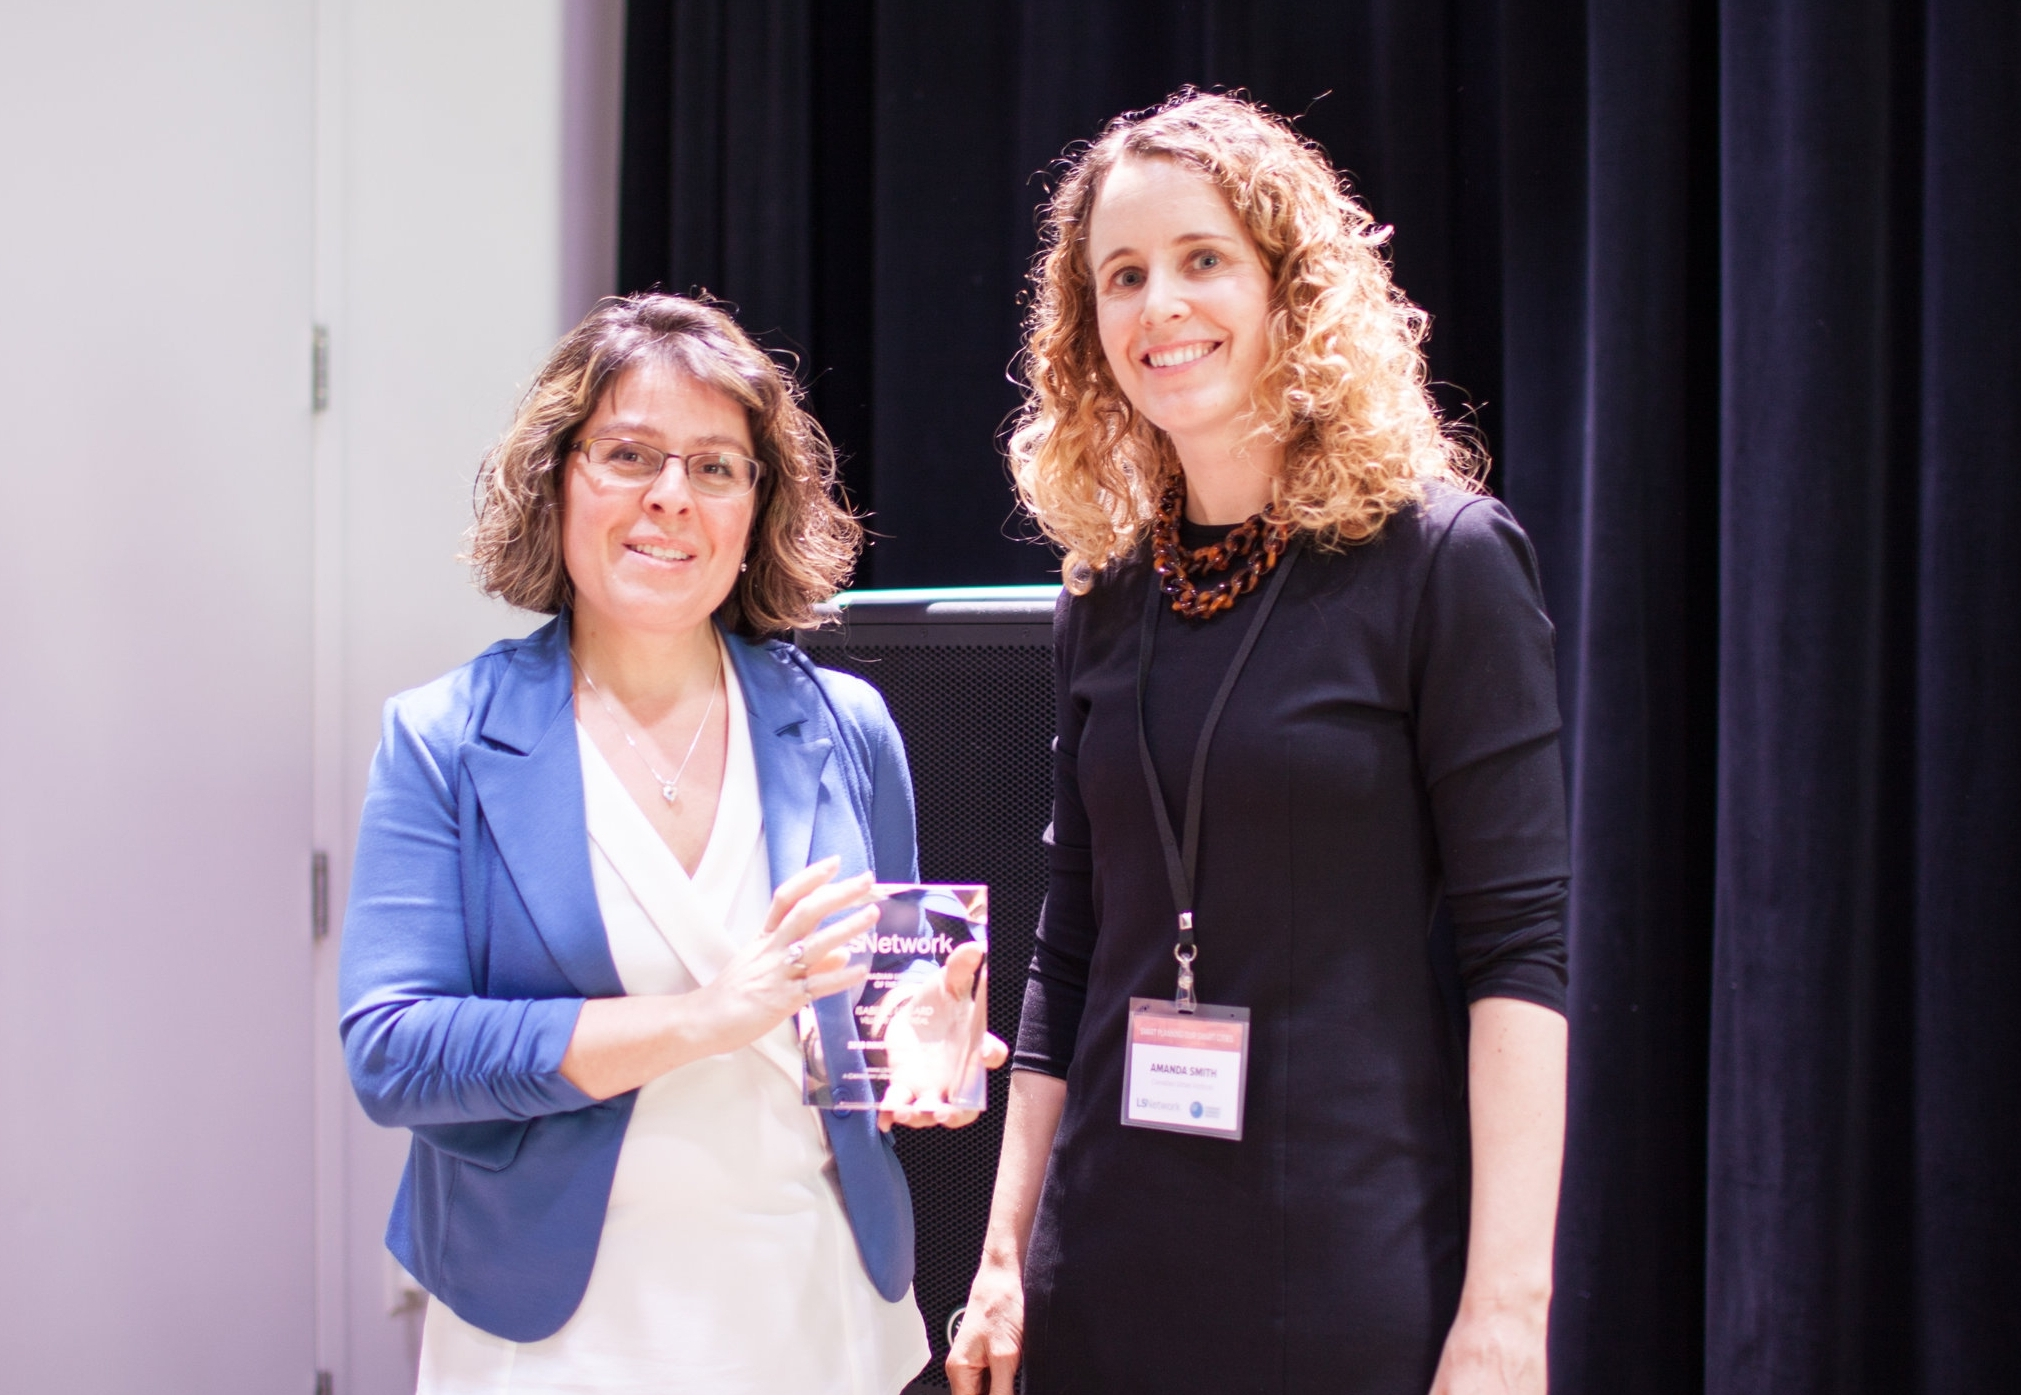 Isabelle Lessard accepting the award with Amanda Smith of LSNetwork.